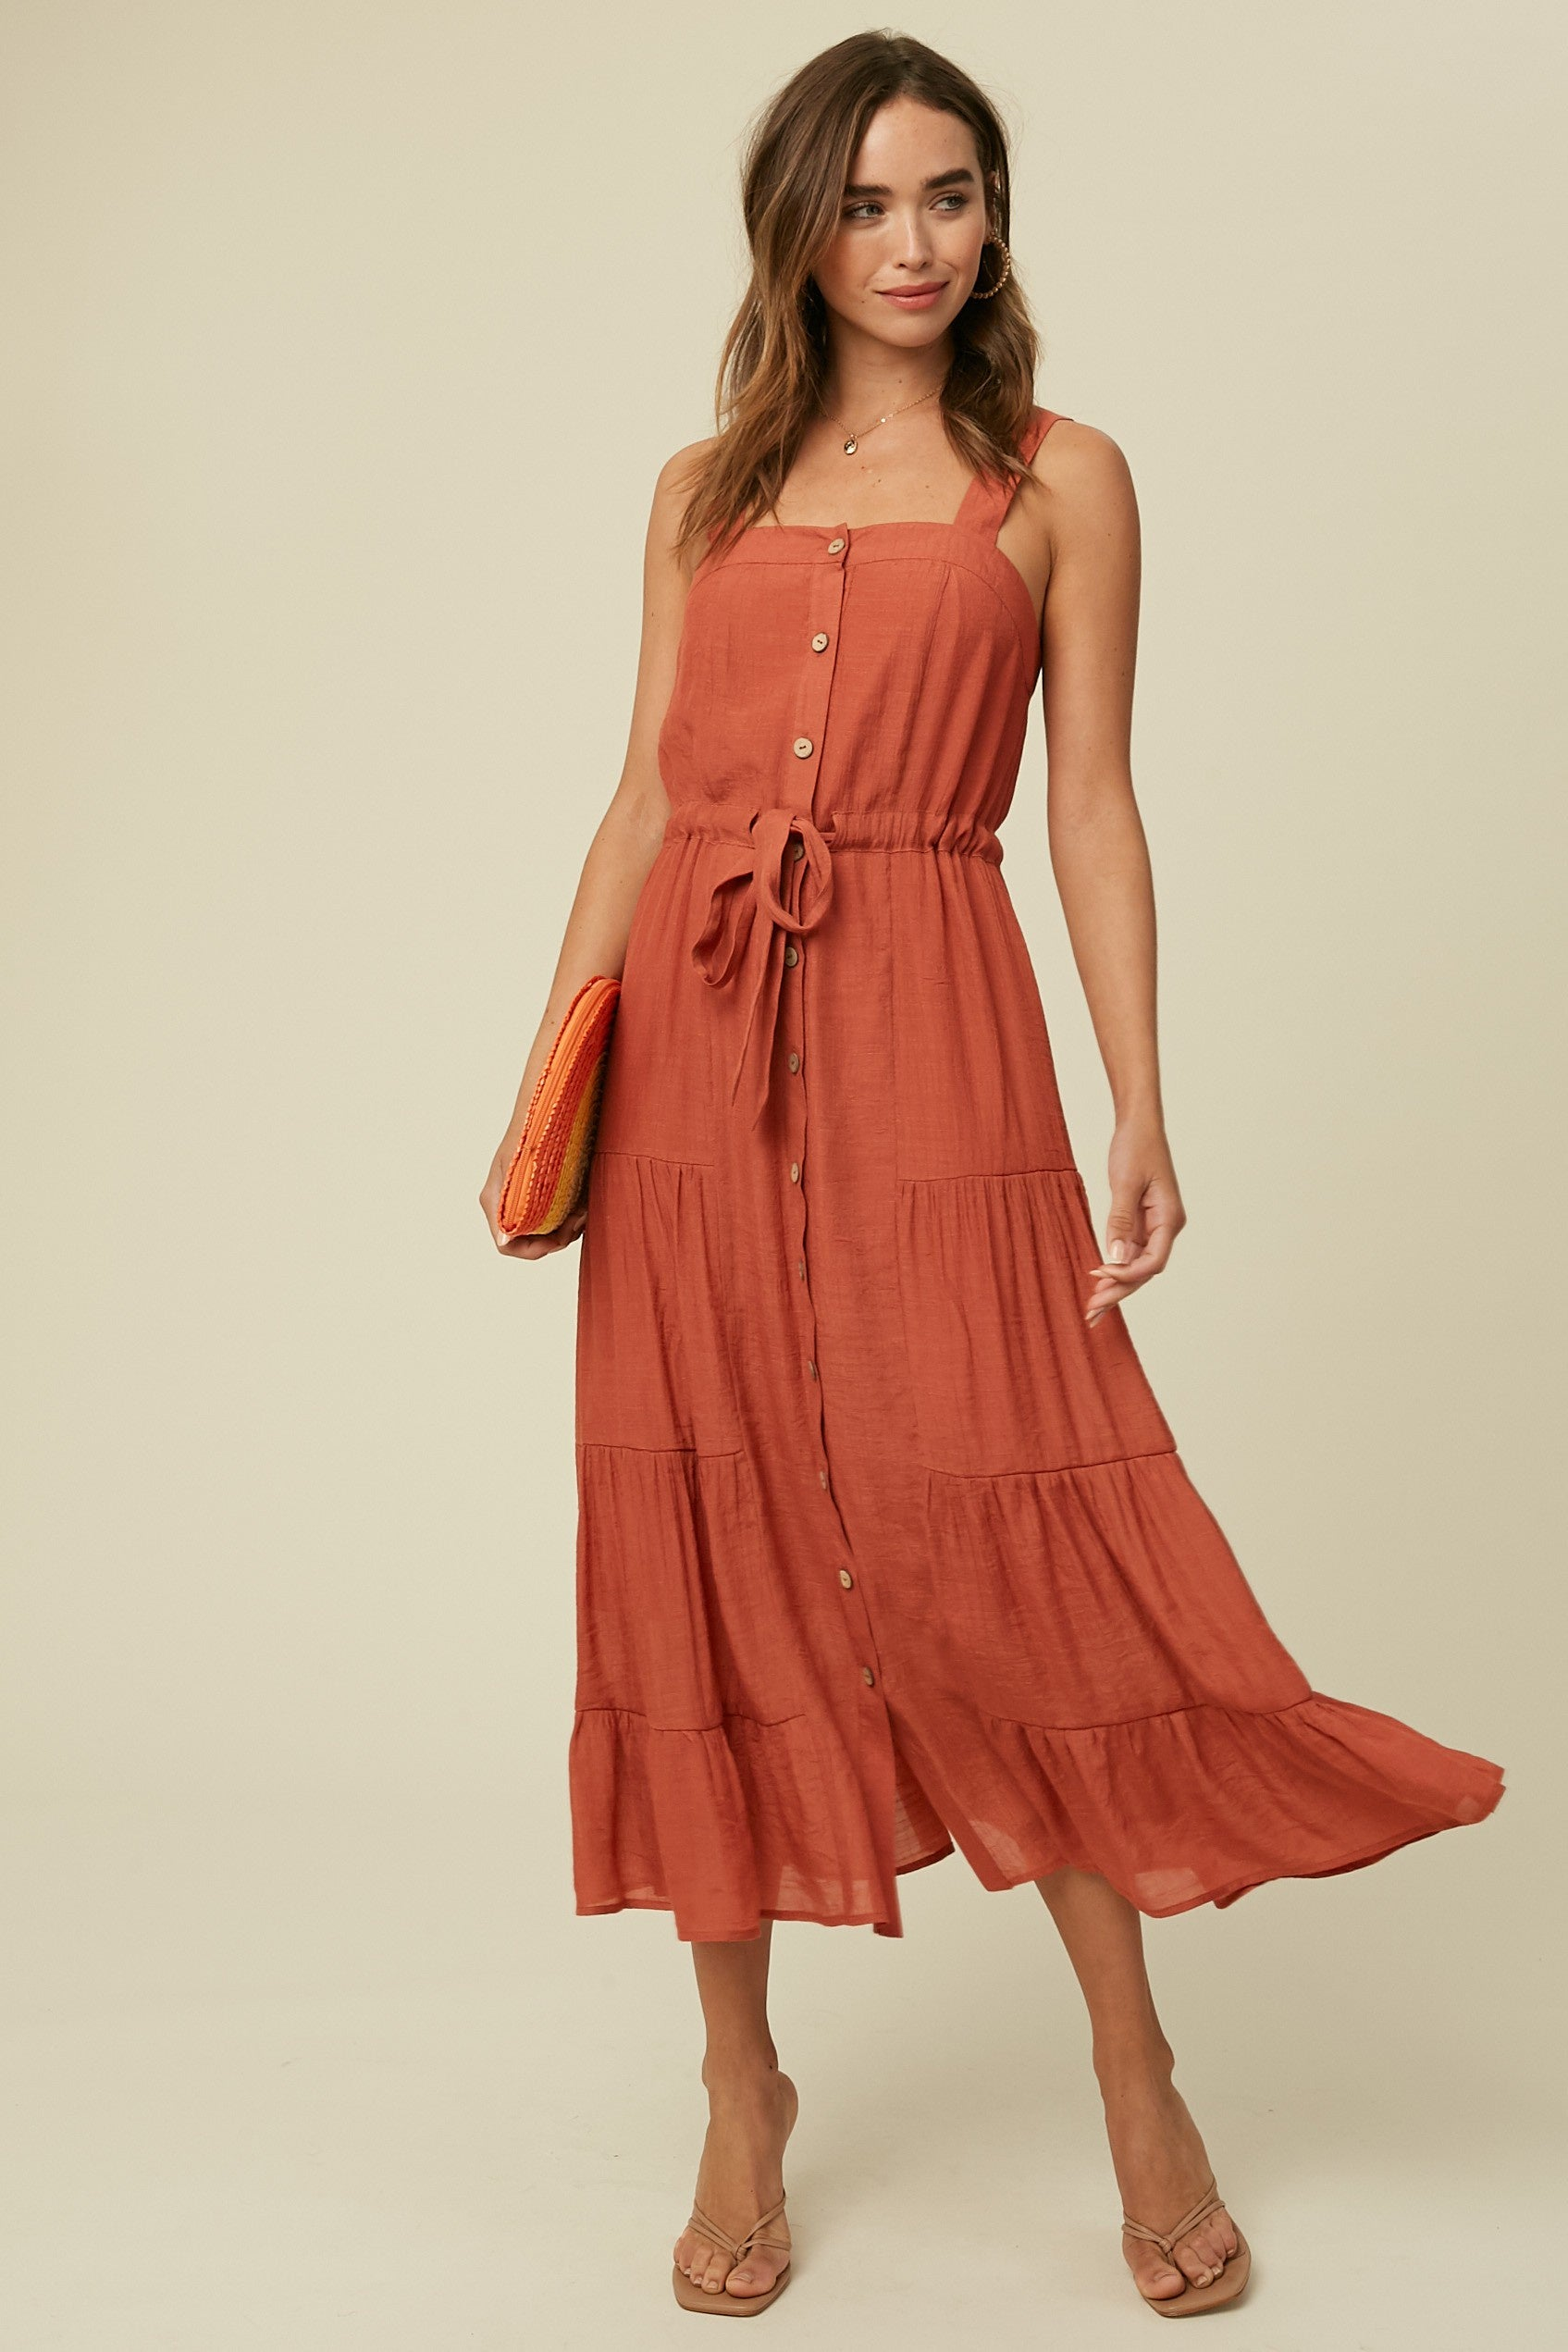 Model wearing a rust (red-orange) dress, features buttons all the way down the front, a drawstring at waist, sleeveless with a square neckline. Skirt has flowy tiers. Model paired with sandals and a bright woven clutch.